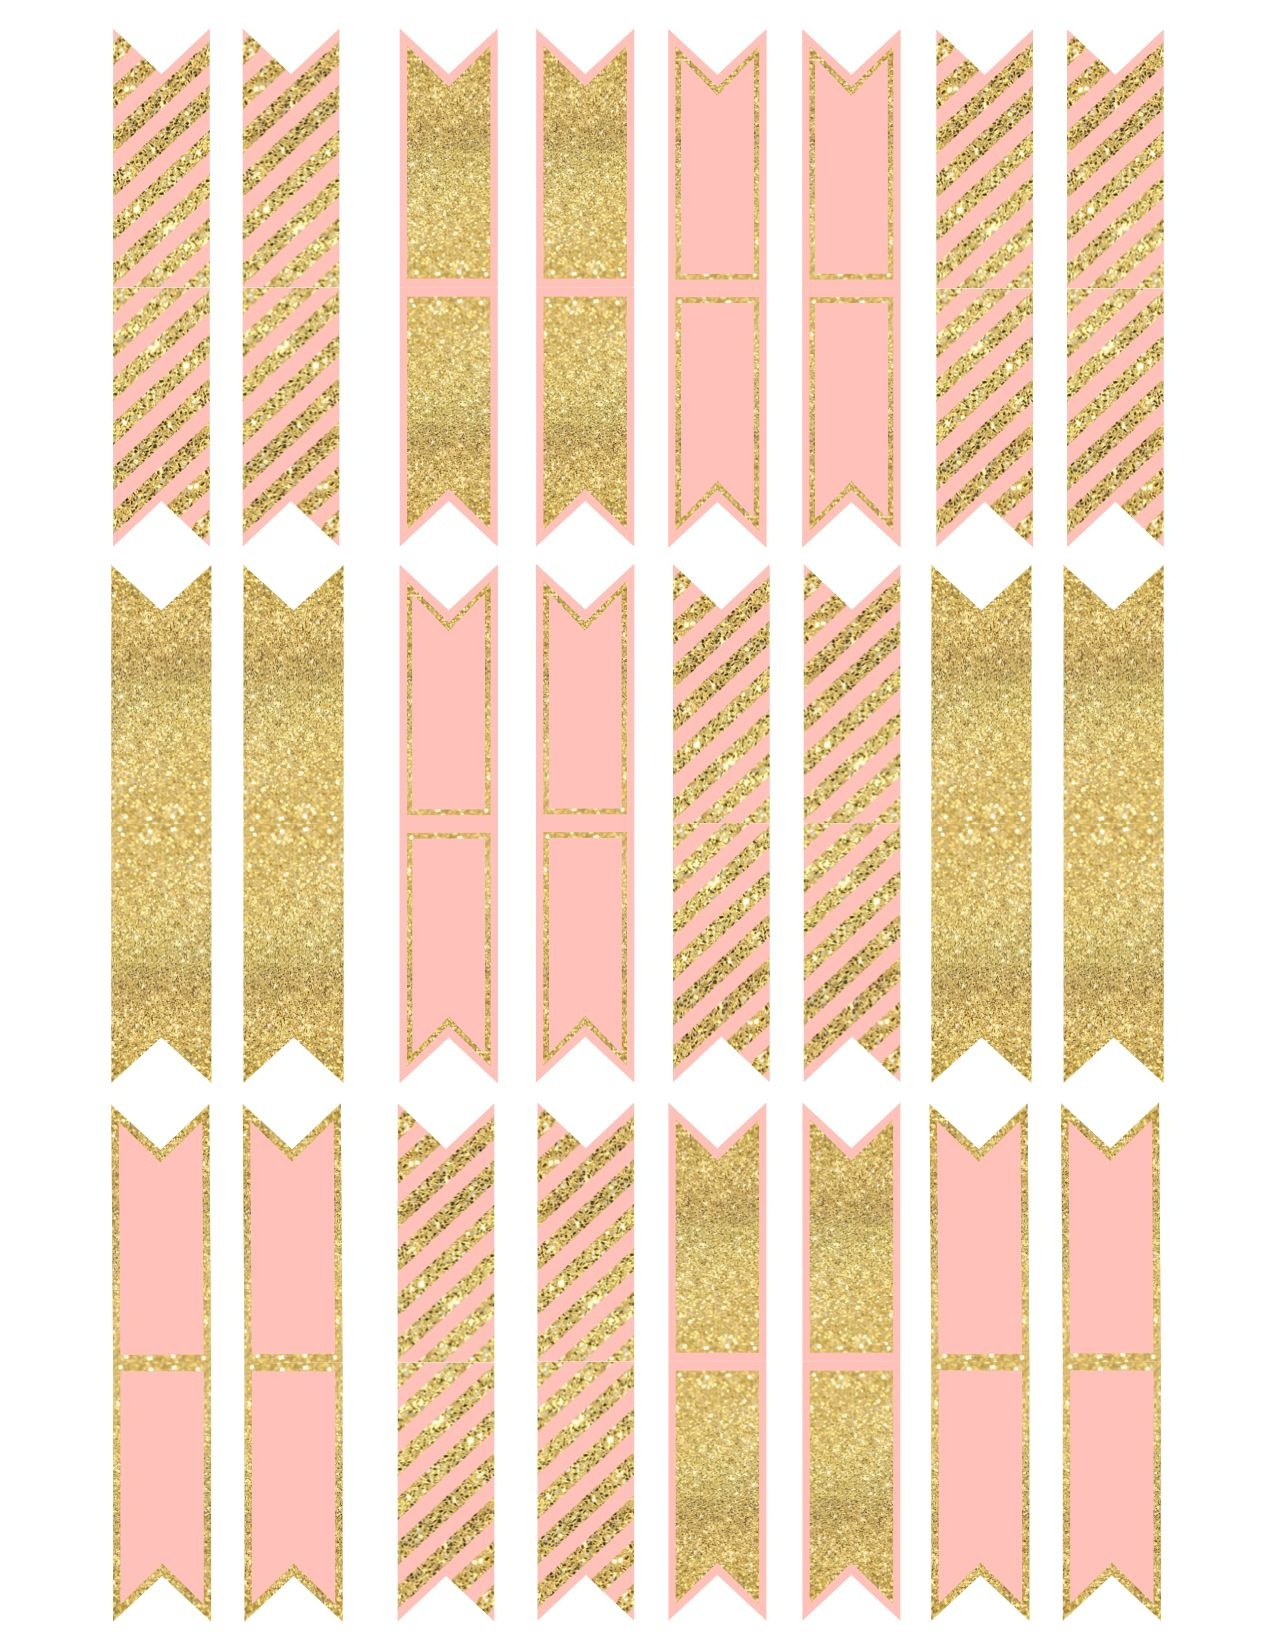 Pink And Gold Cupcake Topper Flags Or Bunting | Arts And Crafts - Cupcake Flags Printable Free